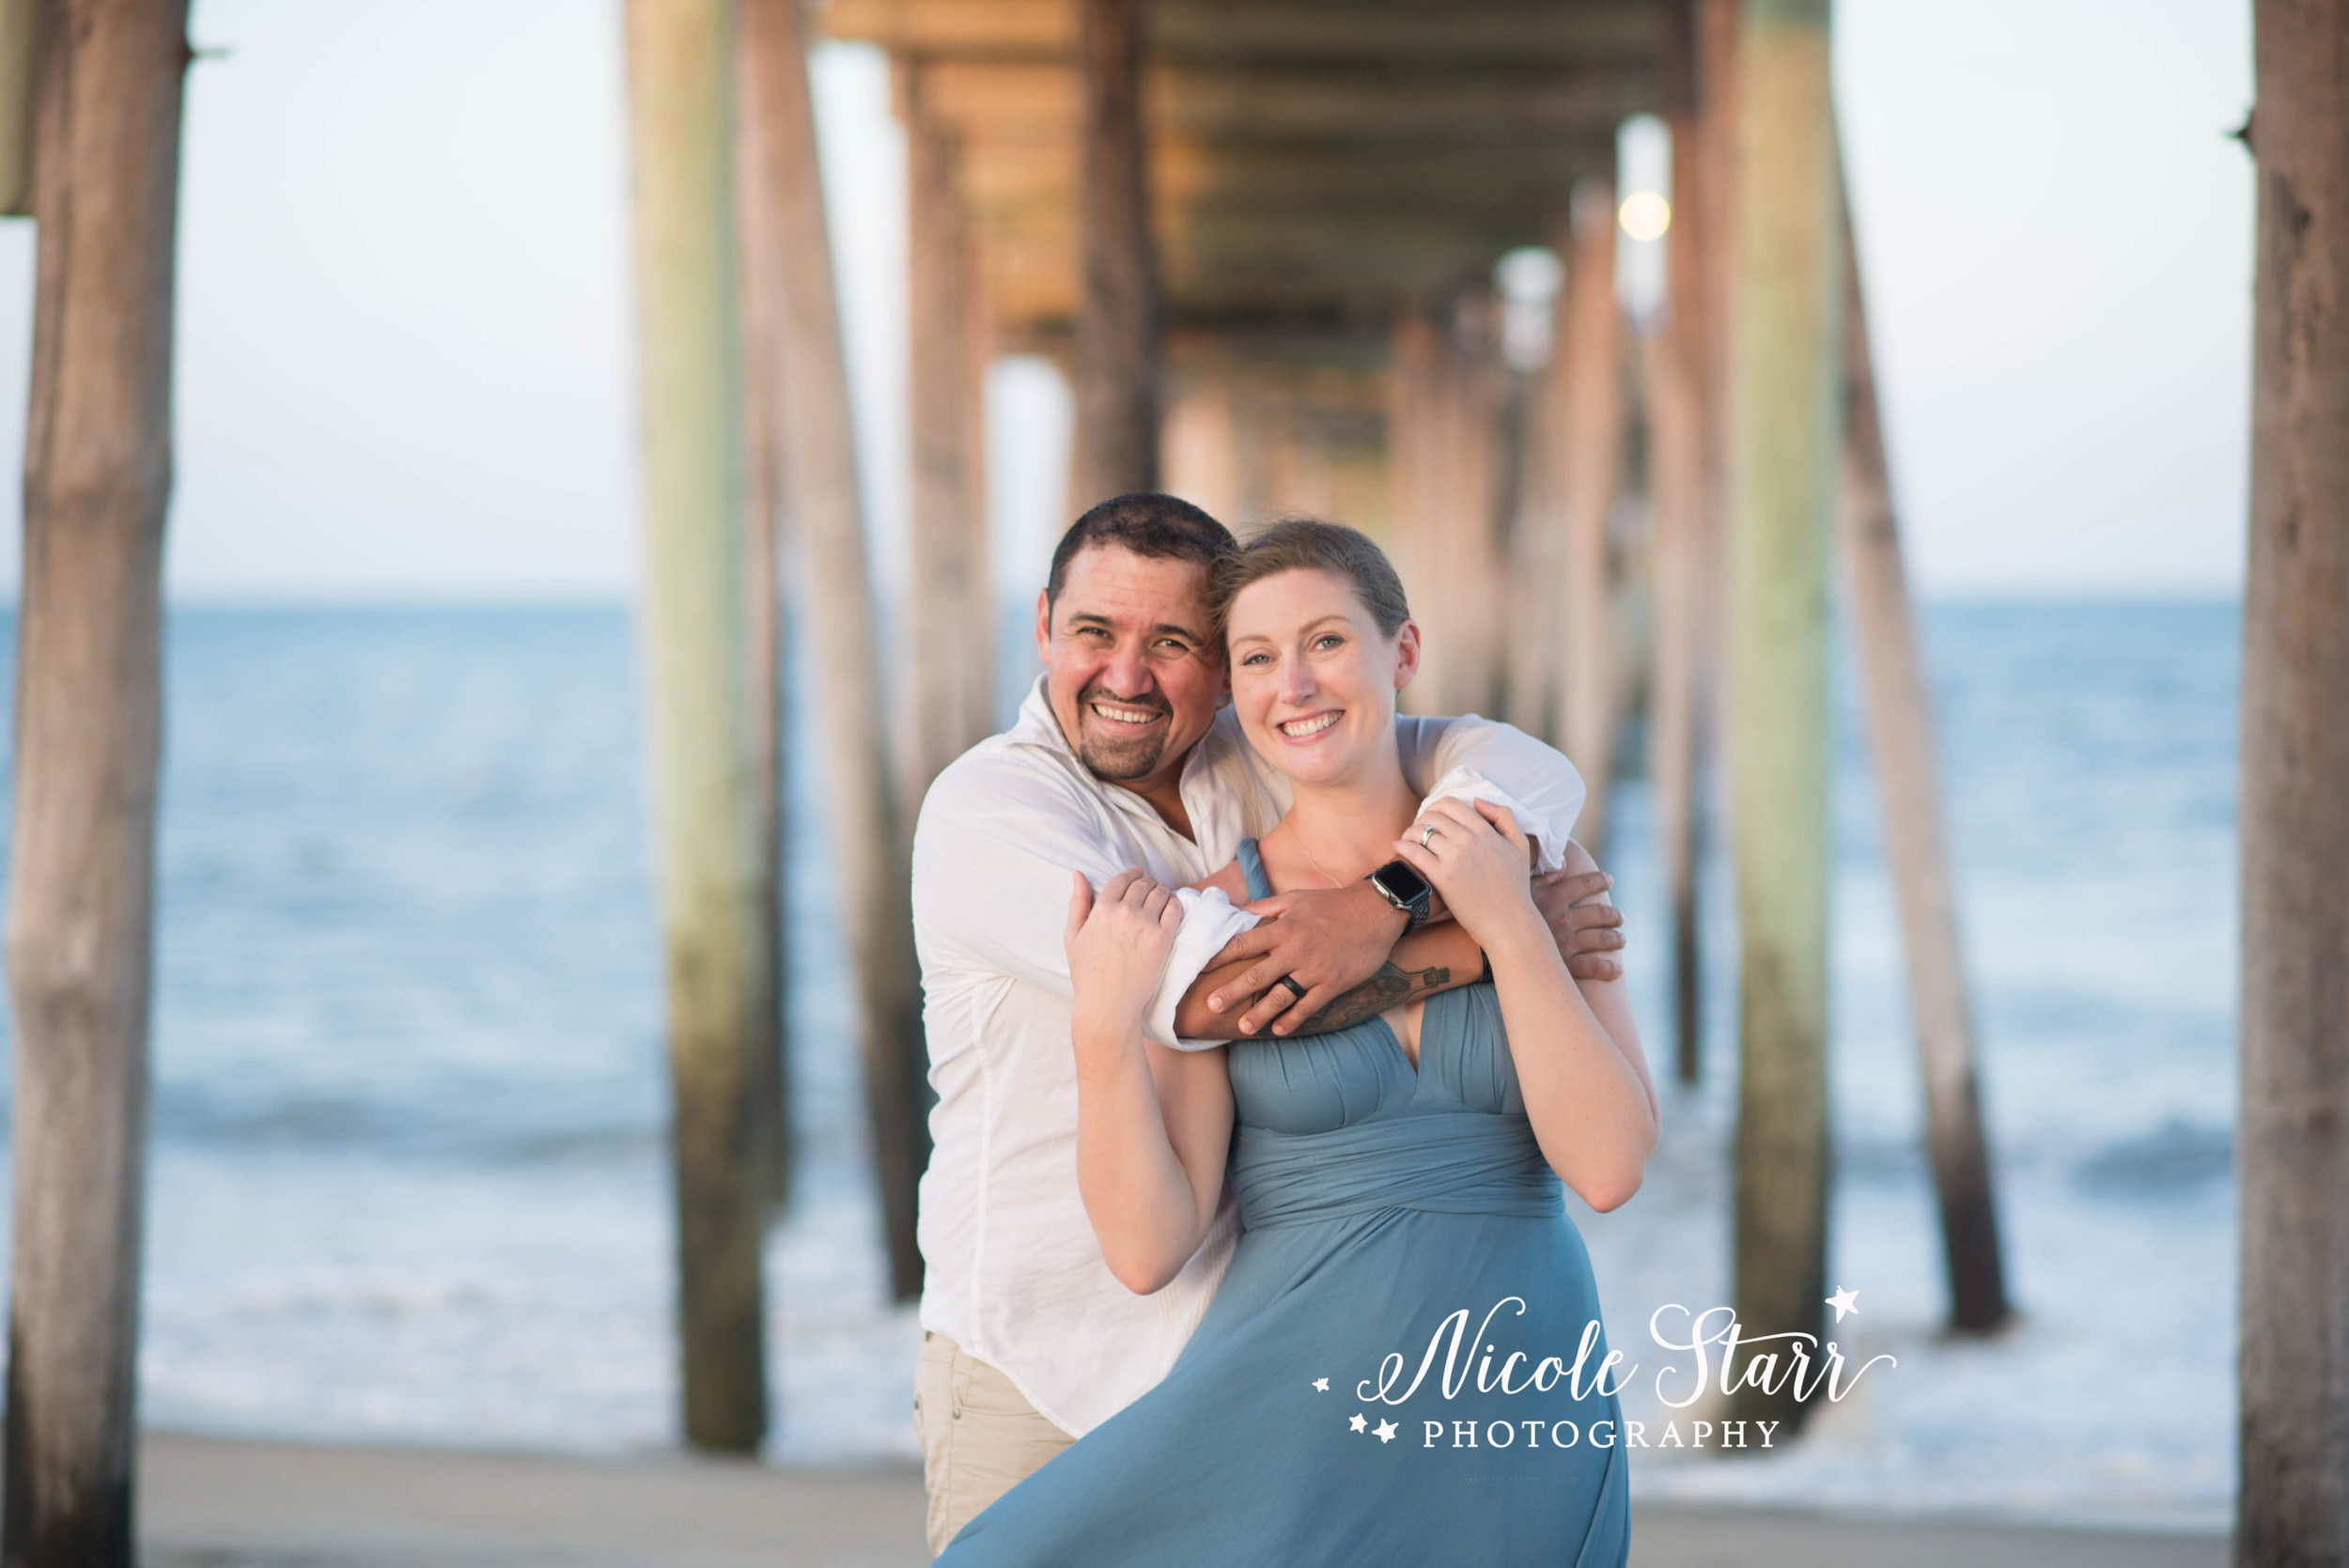 Nicole Starr Photography | Outer Banks Anniversary Photographer | Boston Family Anniversary Photographer | Saratoga Springs Anniversary Photographer | Anniversary Photographer